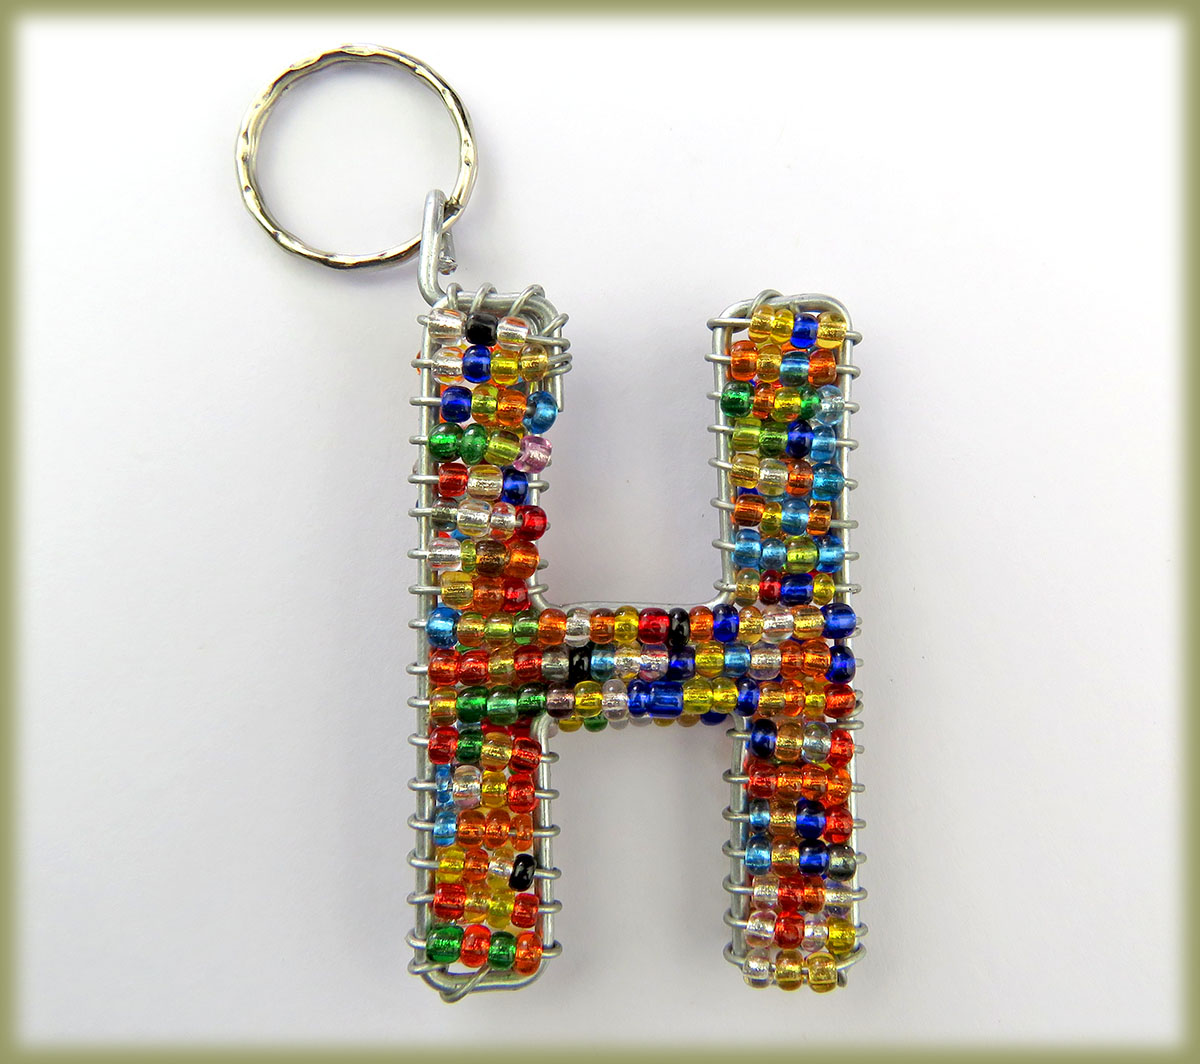 Beaded Key Ring Alphabet Letter H